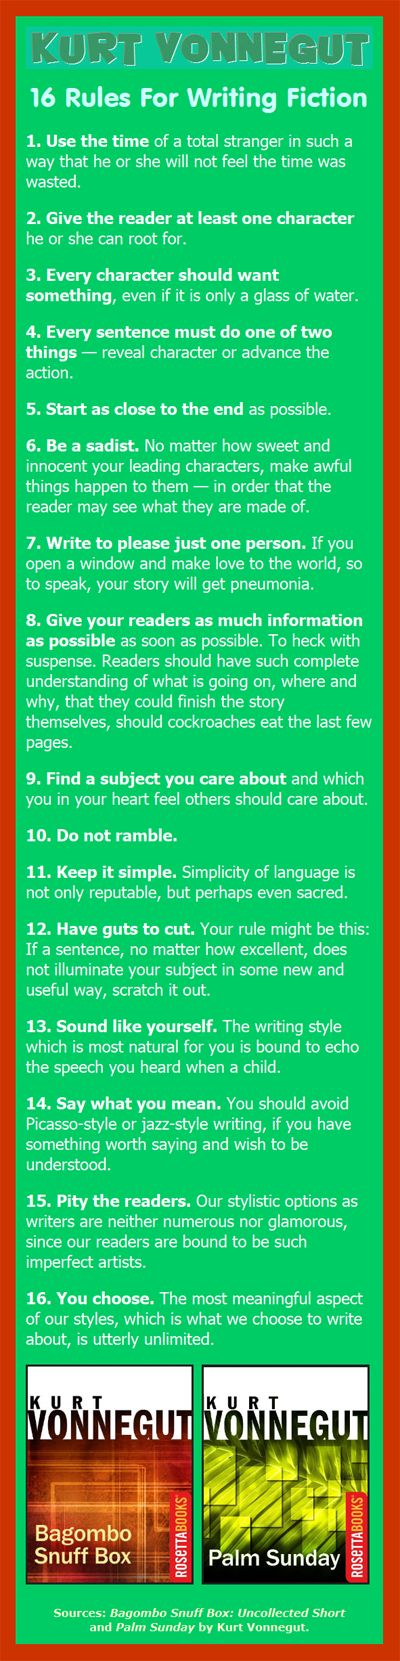 Kurt #Vonnegut: 16 Rules for #Writing #Fiction. #amwriting